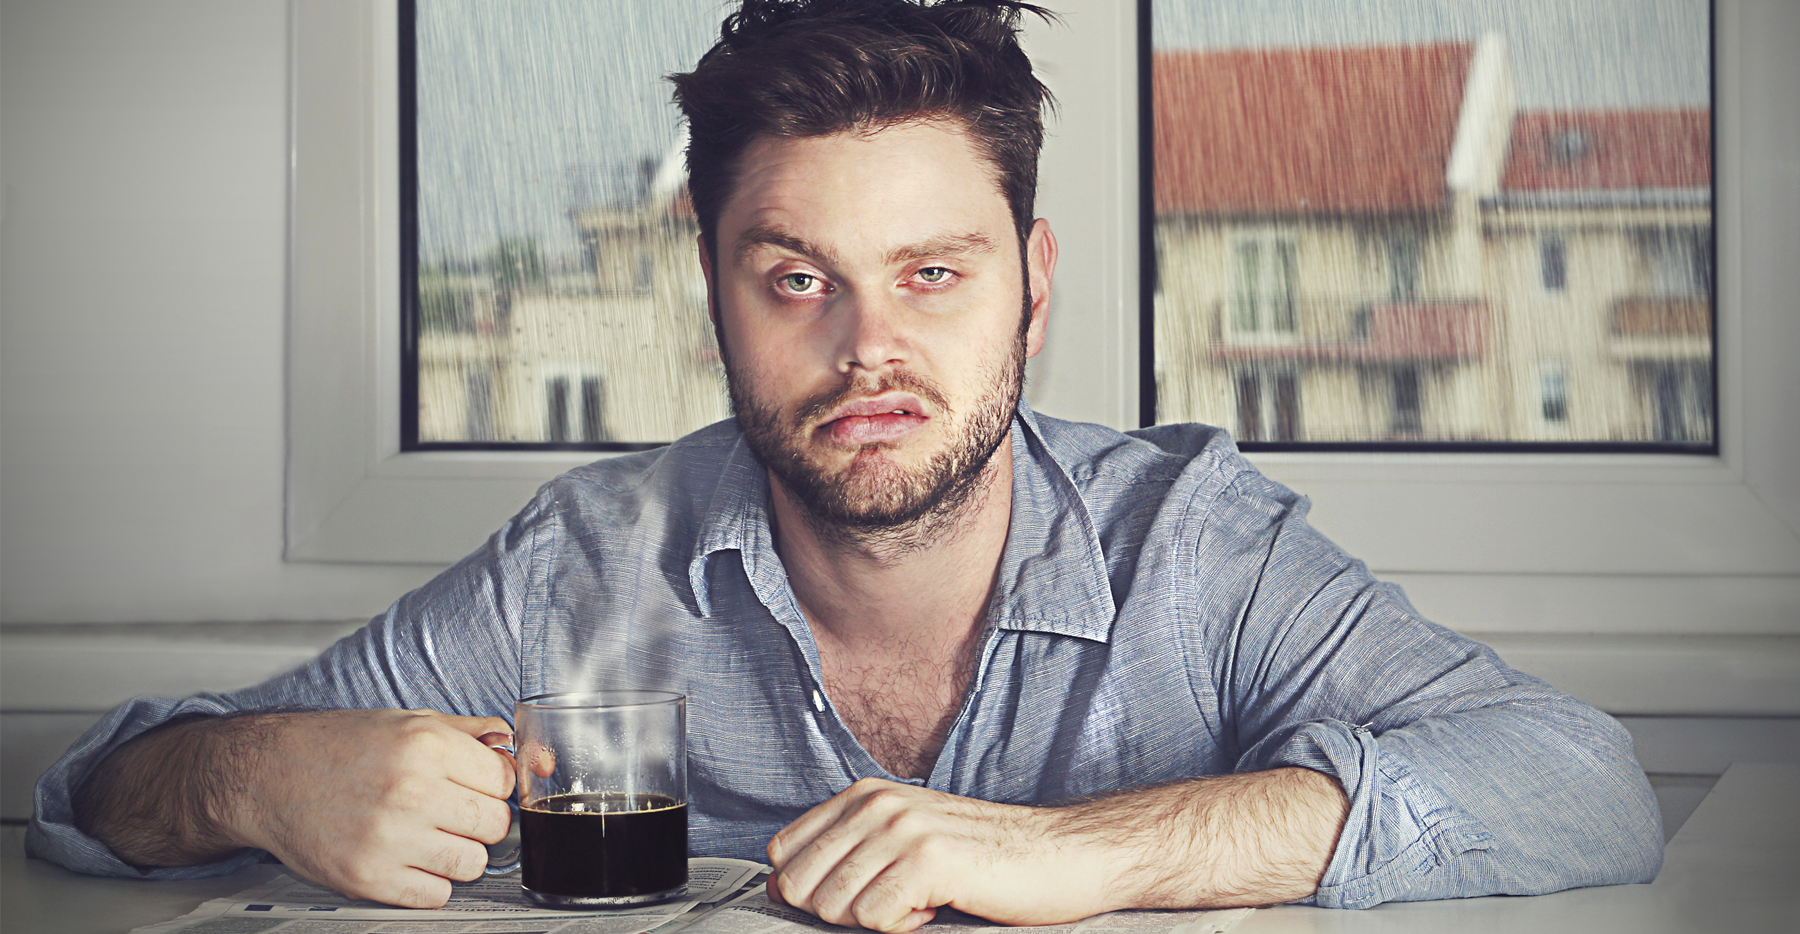 The Worst Jobs to Have While Hungover